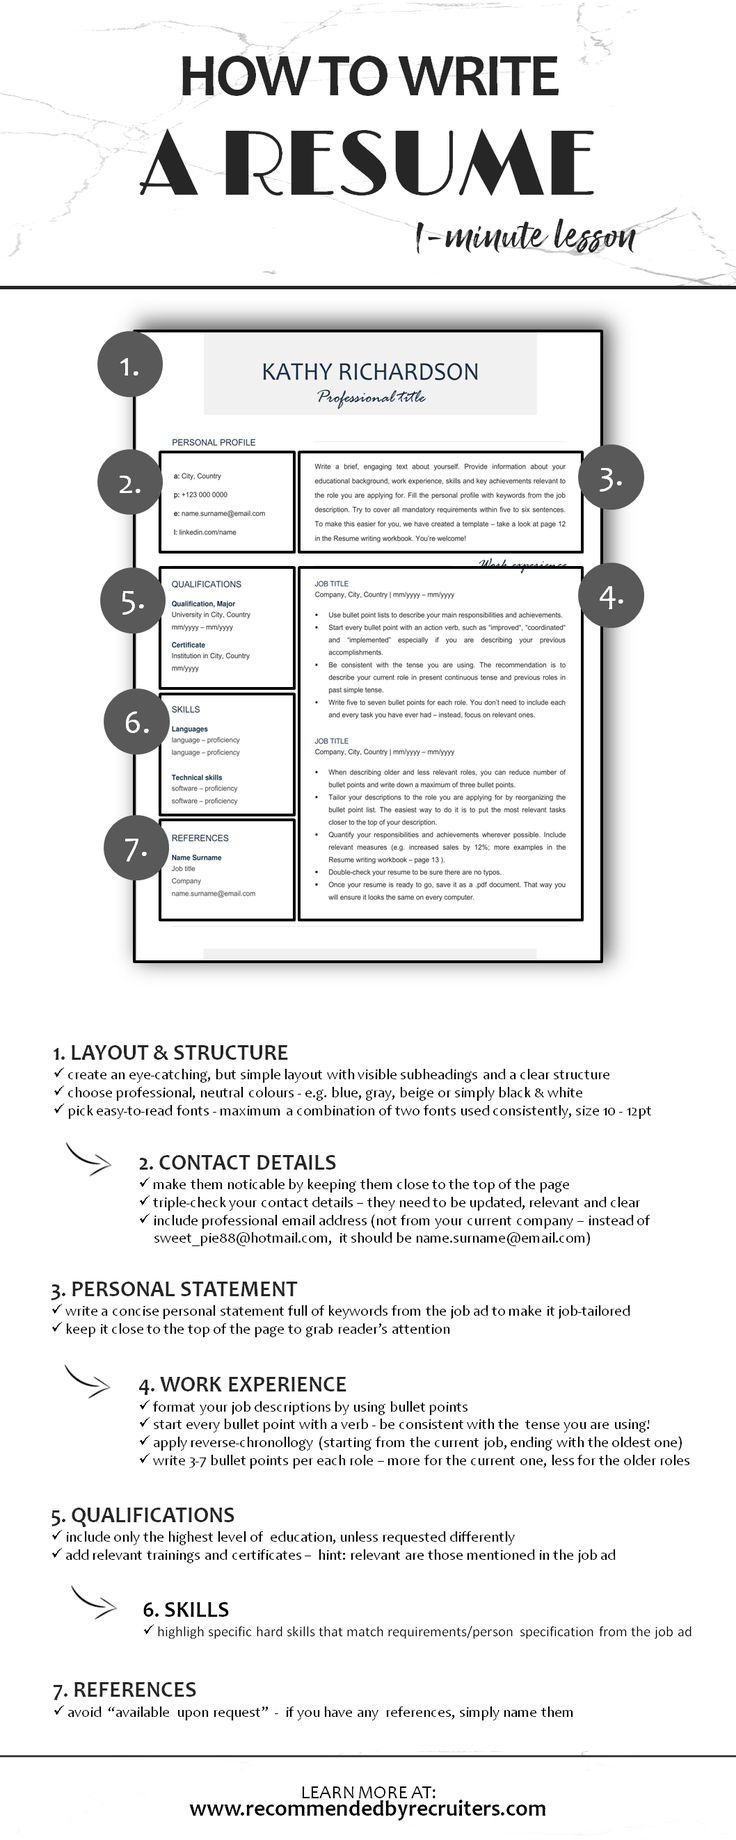 Learn How To Write A Perfect Resume In Less Than 1 Minute Cv Writing Simplified By Professional Recr Resume Writing Tips Resume Templates Resume Template Word